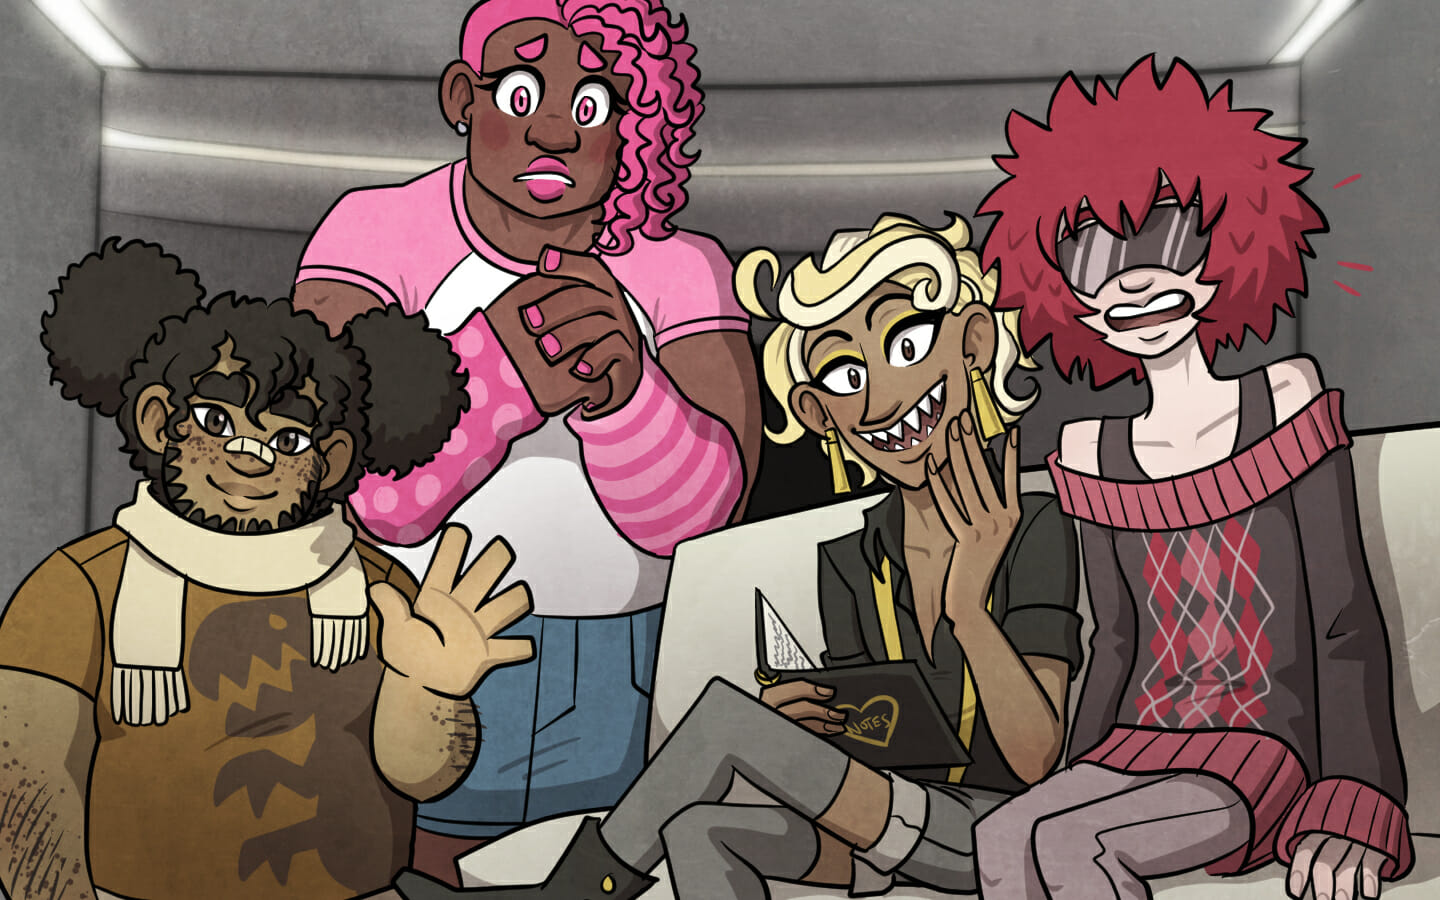 There are four people in the room: a chubby boy with his hair pulled up into pigtails that resemble pompoms, a large muscular girl with pink hair and a worried expression, a blond demiboy with shark-like teeth wearing suspenders and shorts with leggings, and a person with a large tuft of red hair, a sunglasses-like visor, and an argyle sweater.